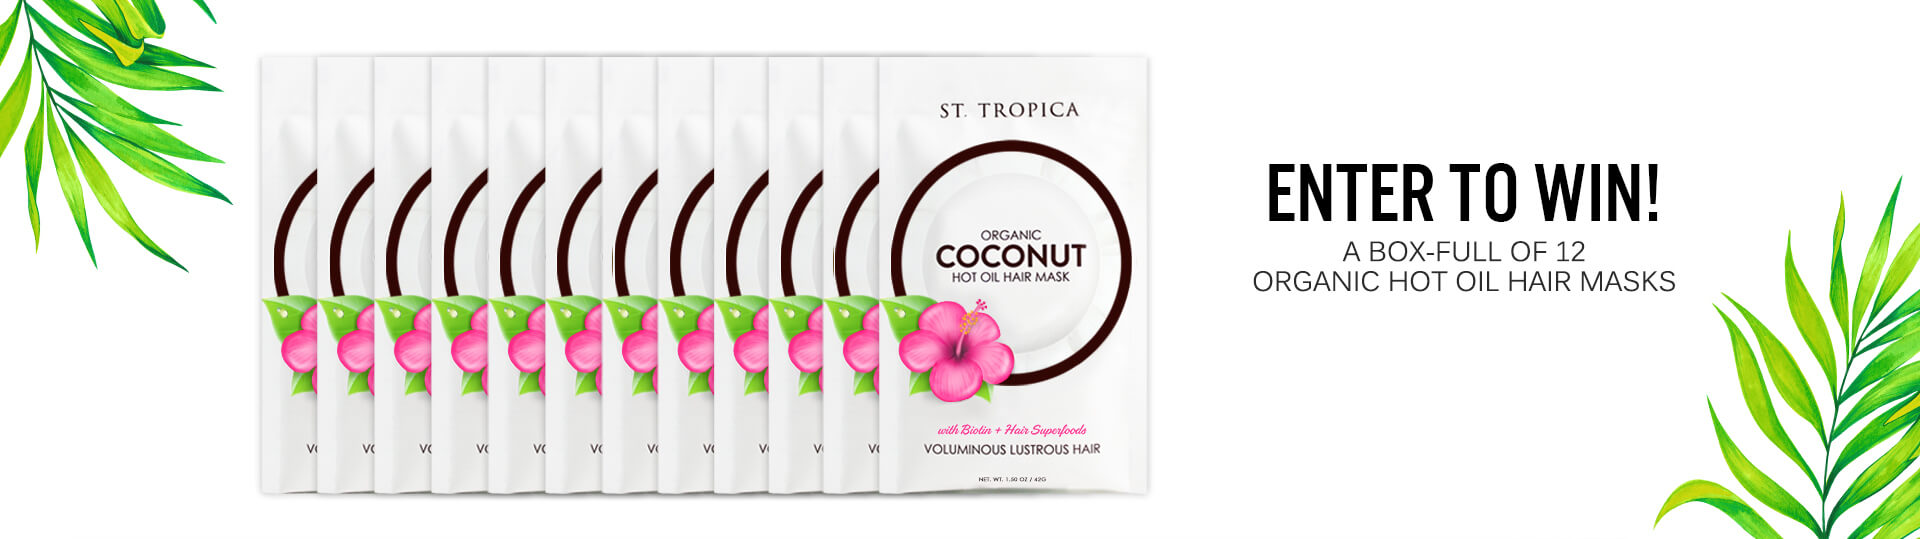 12 ST. TROPICA Hair Masks to be won